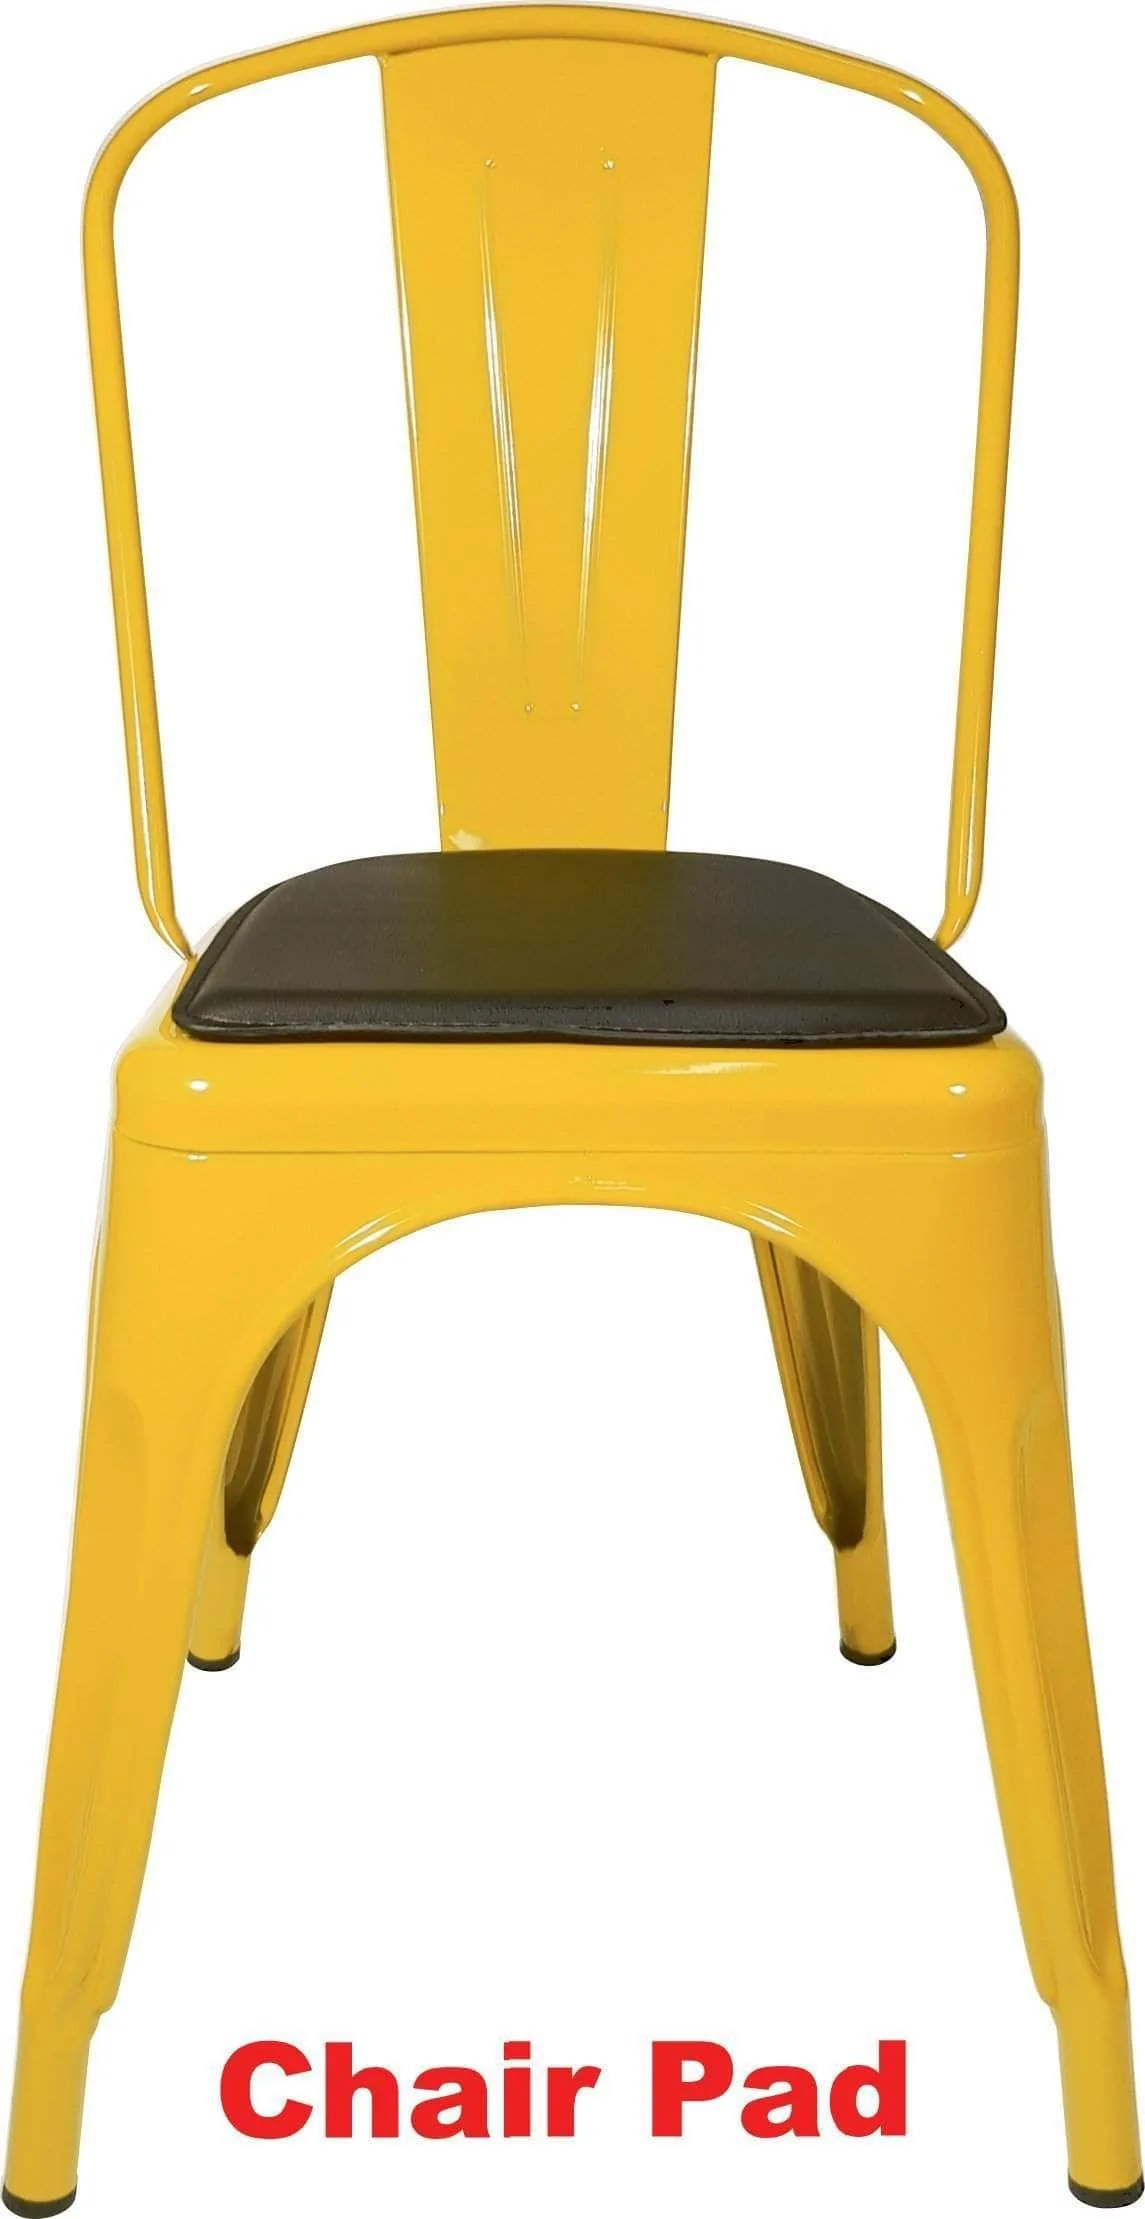 Egg Chair Perth Tolix Replica Cafe Chair Yellow Buy Online Afterpay